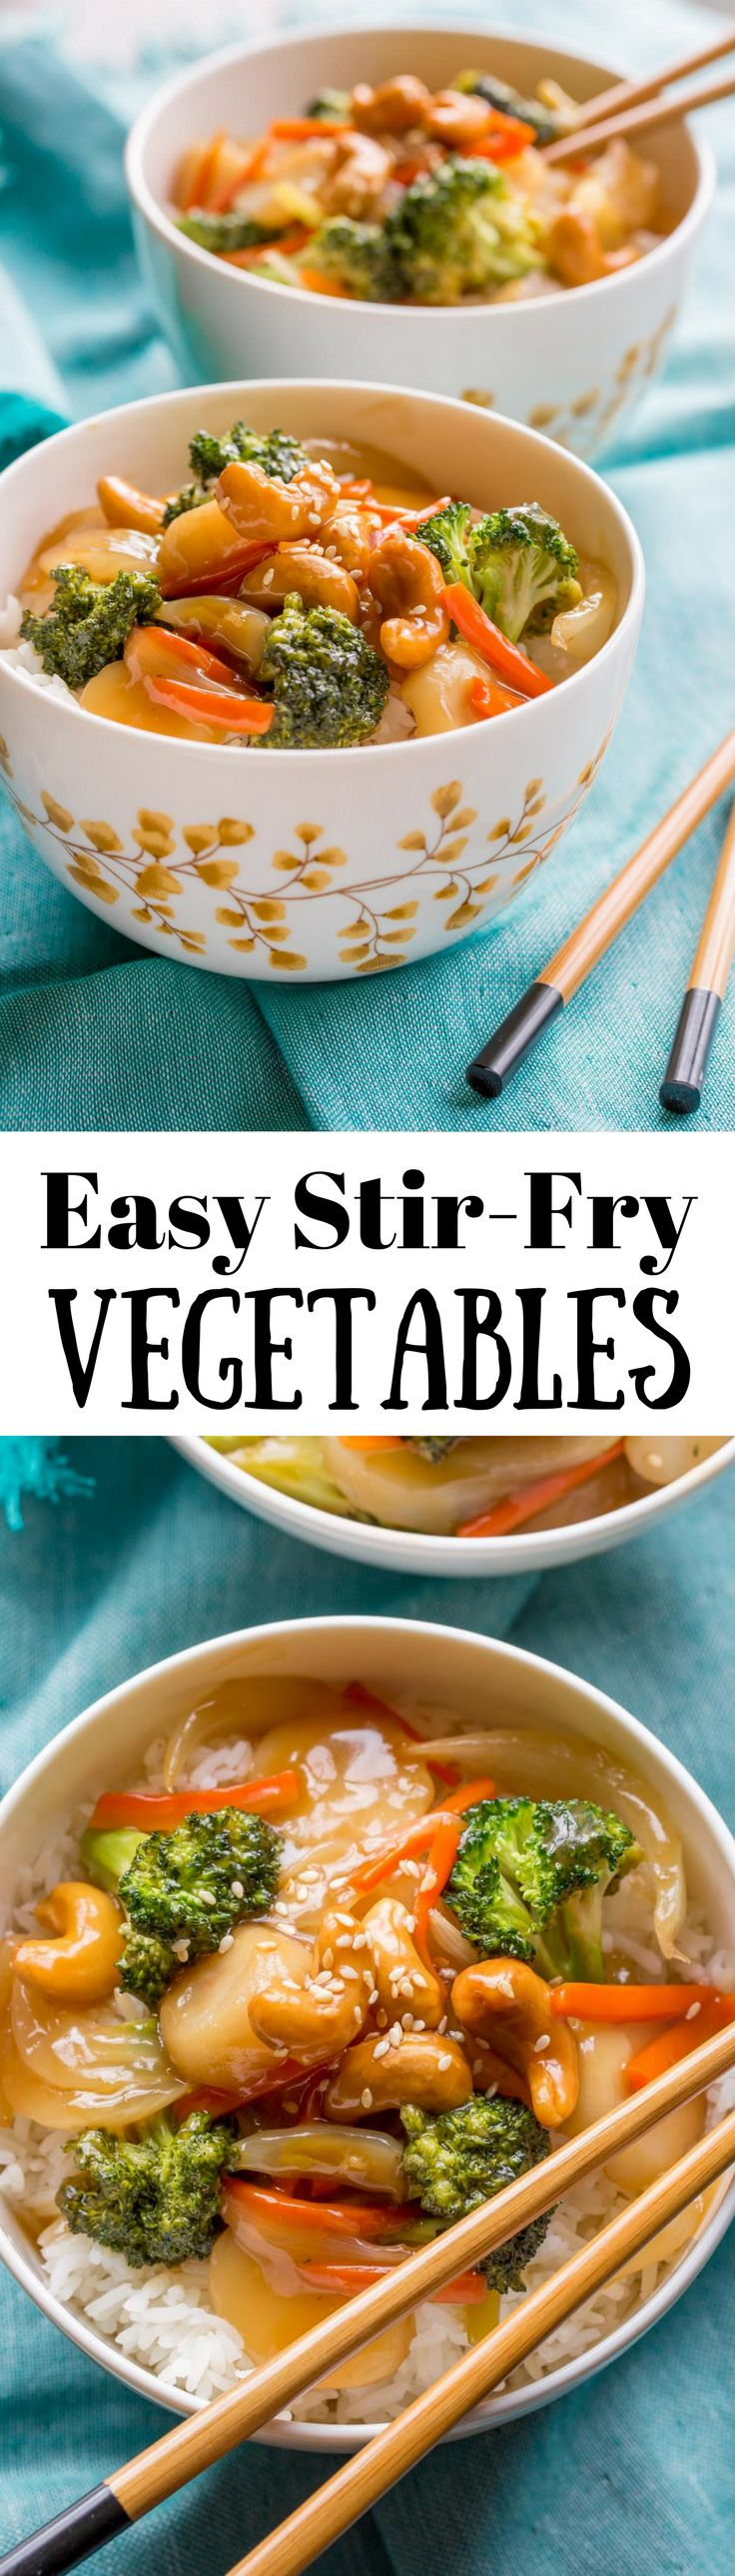 Easy Stir Fry Vegetables - who doesn't love a true 15 minute meal loaded with tender crisp broccoli, carrots, onions, and water chestnuts coated in a tangy, sweet sauce, then topped with cashews and served over a bowl of rice | www.savingdessert.com